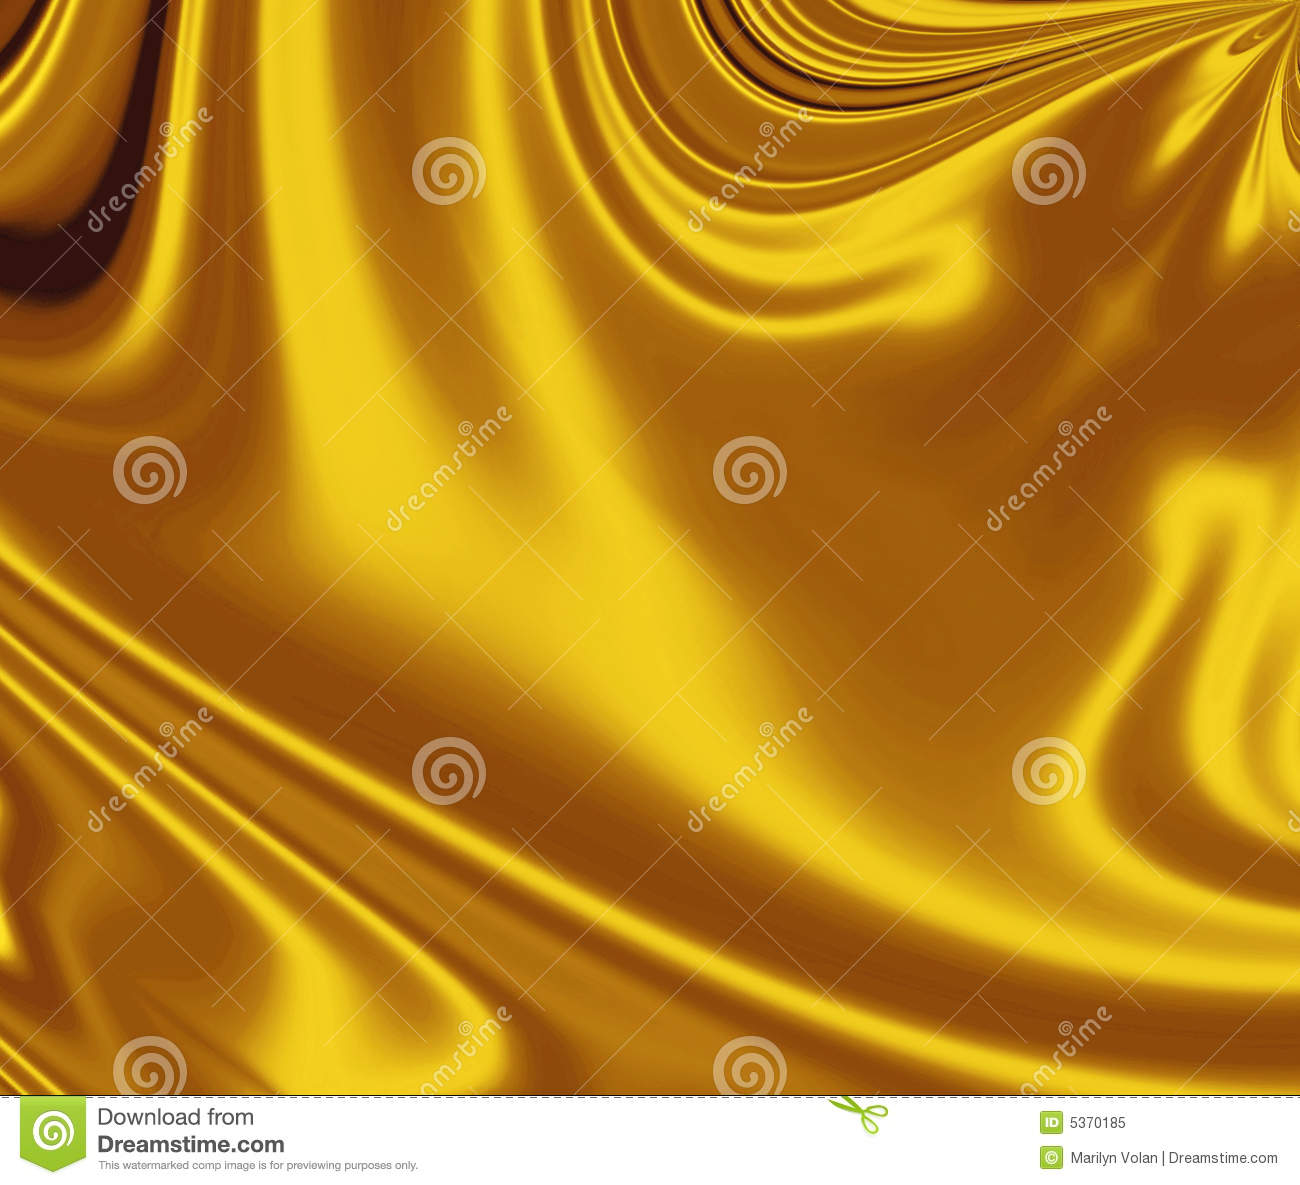 39664482e917b Sensuous, smooth luxurious gold satin background with shine, folds, creases  and copyspace